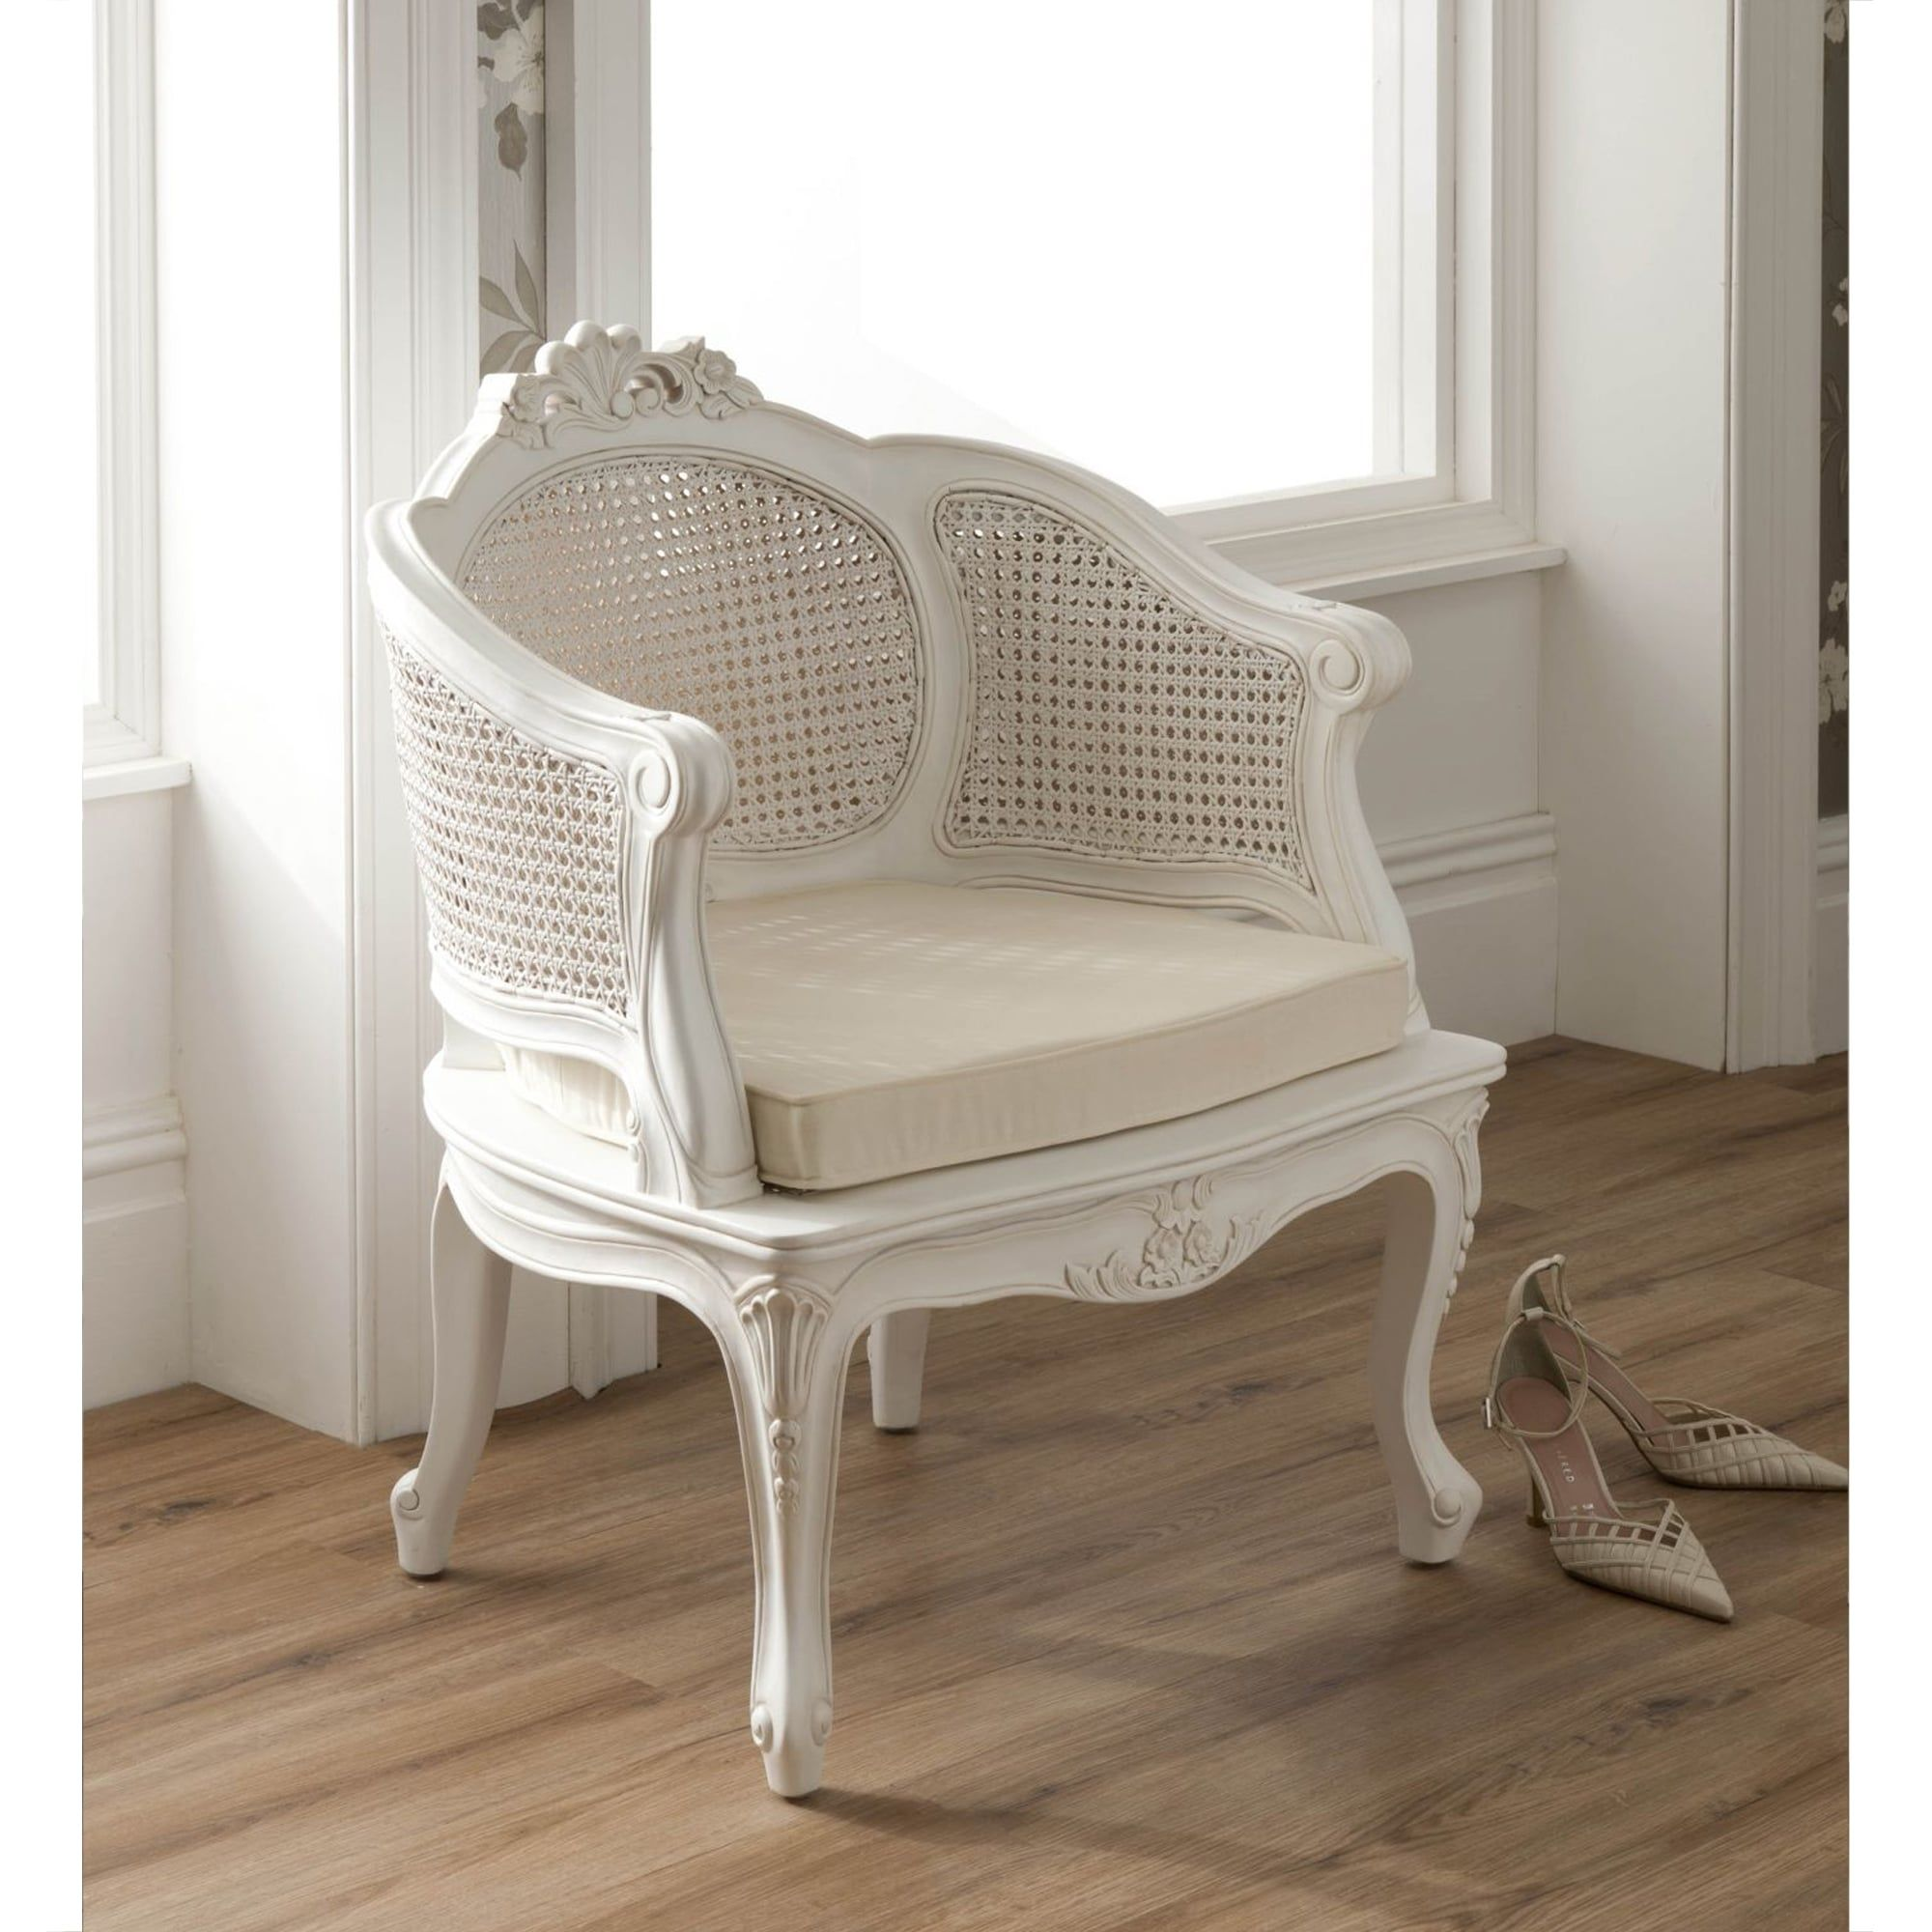 beautiful white wicker bedroom furniture | La Rochelle Antique French Style Rattan Chair | Vintage ...